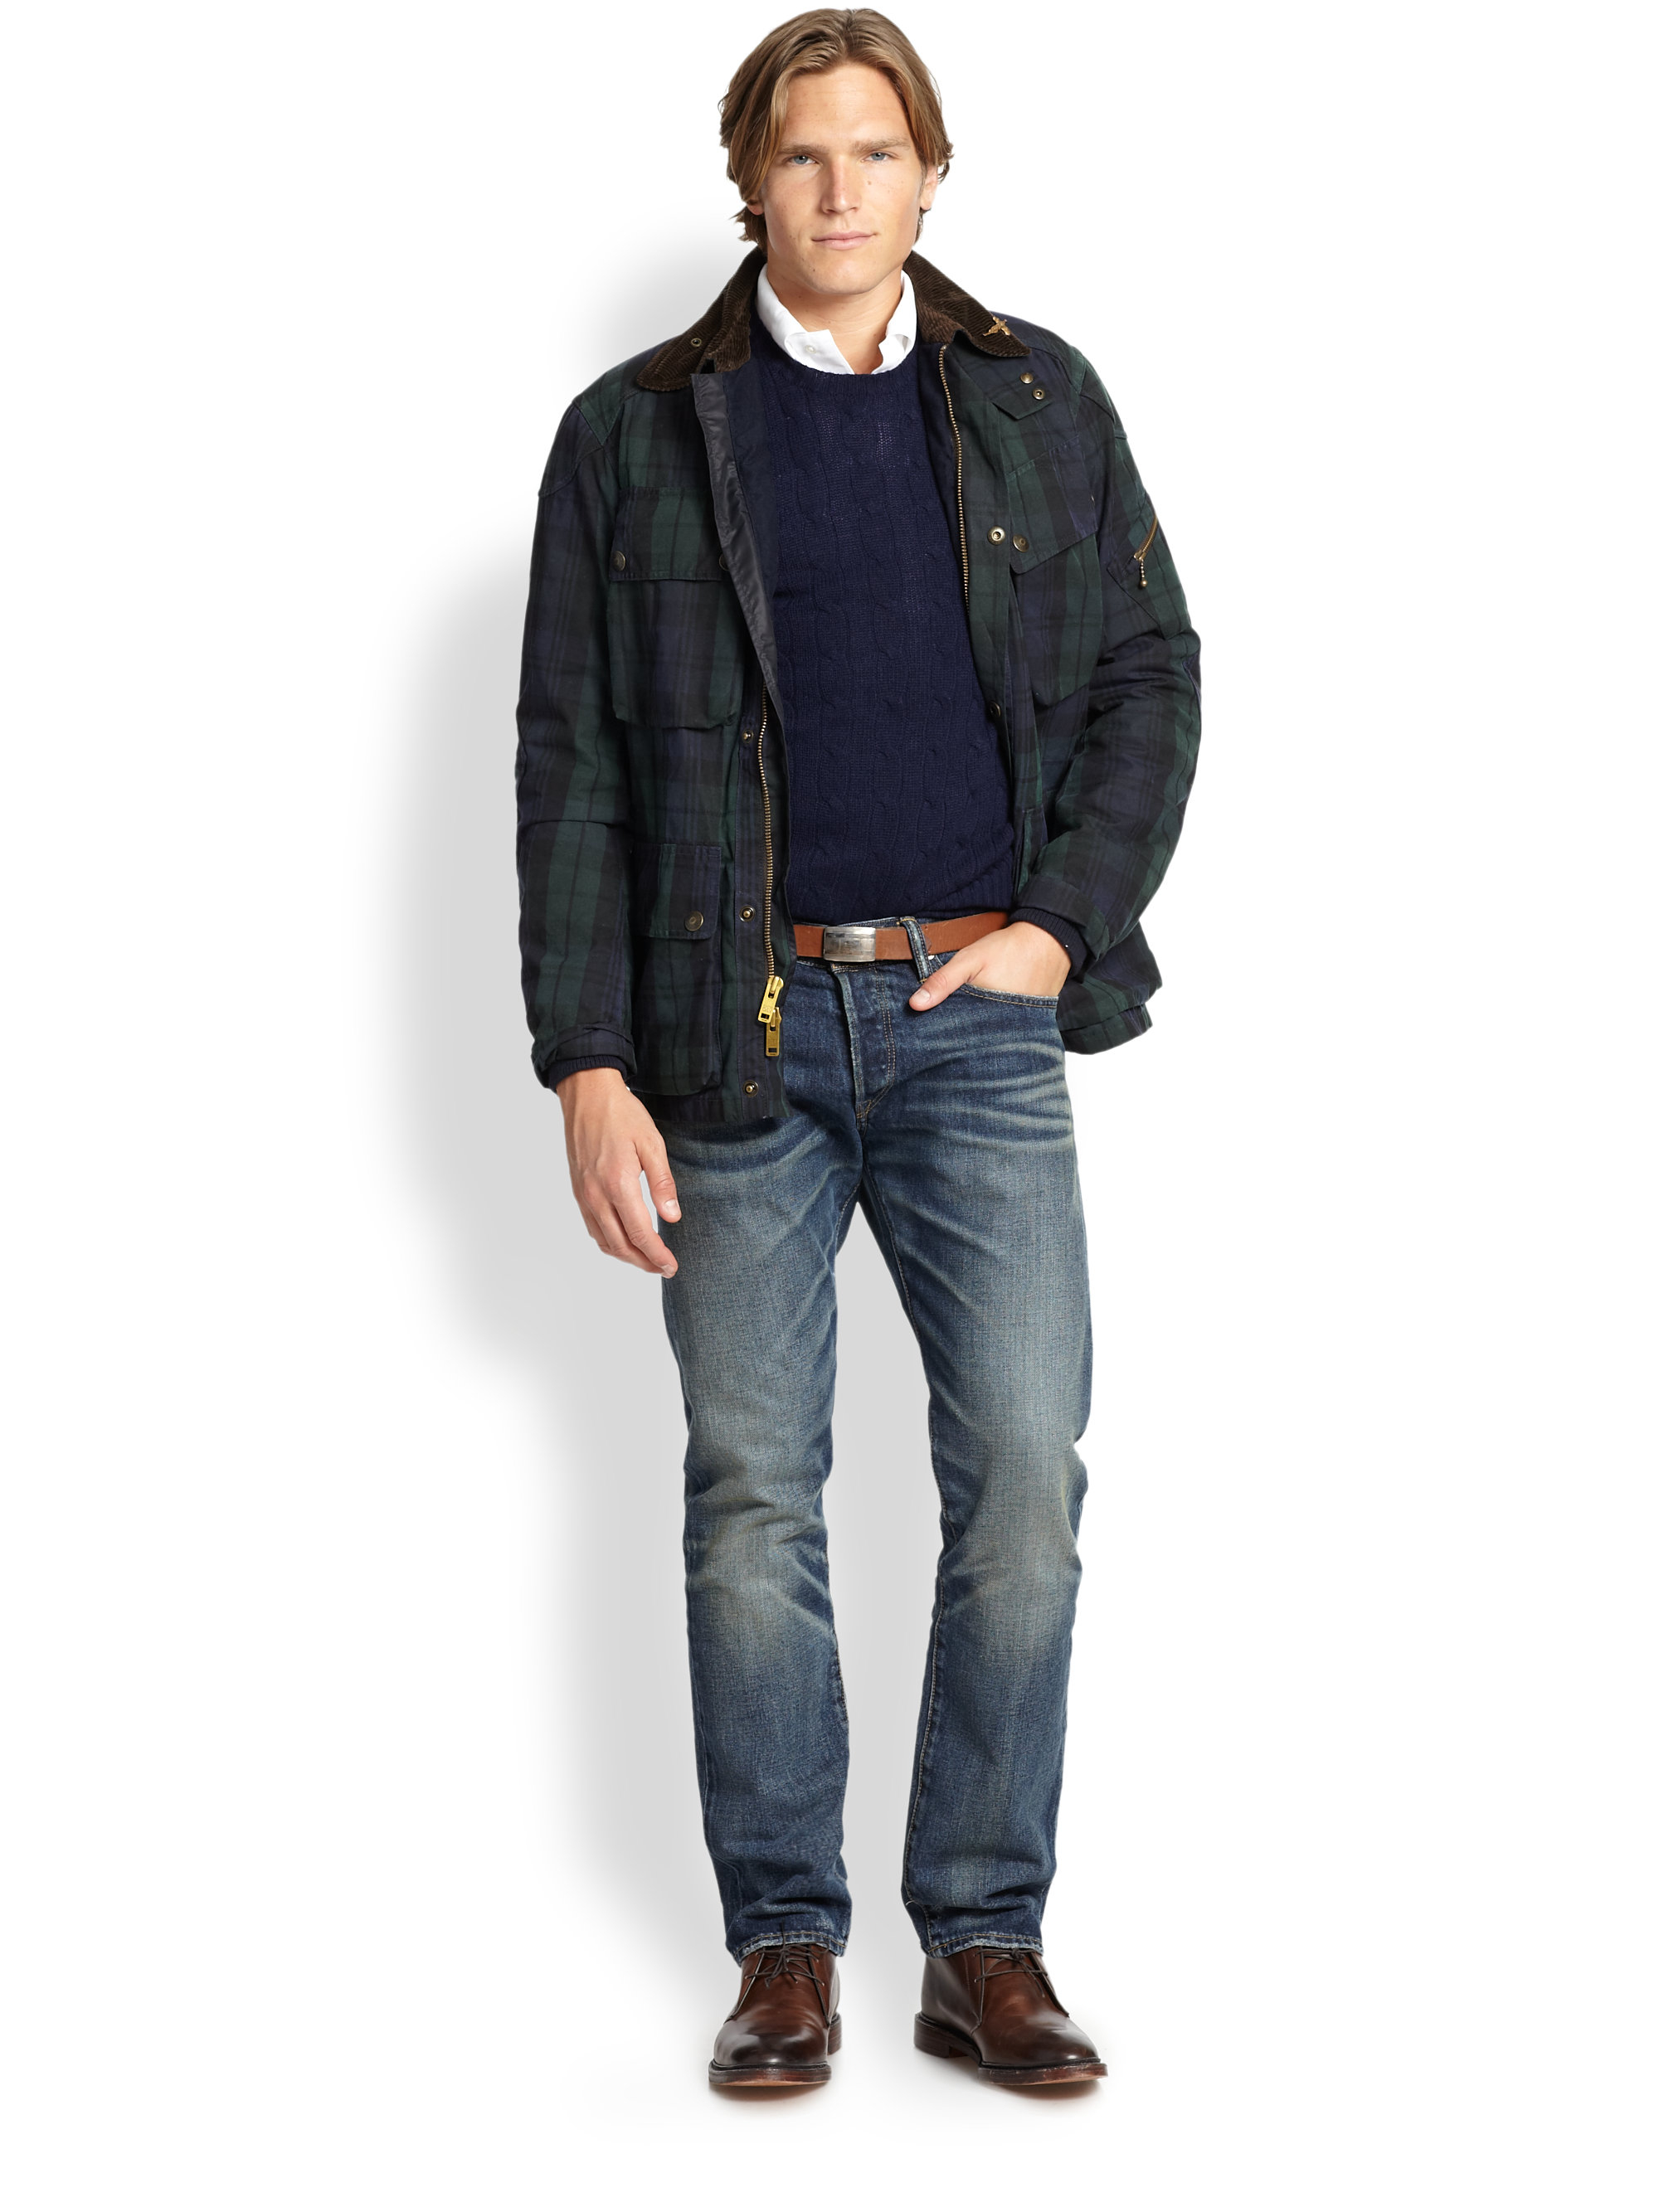 by for ralph lauren trends winter base jacket boys toddlers mens of quilt quilted fashion gallery jackets